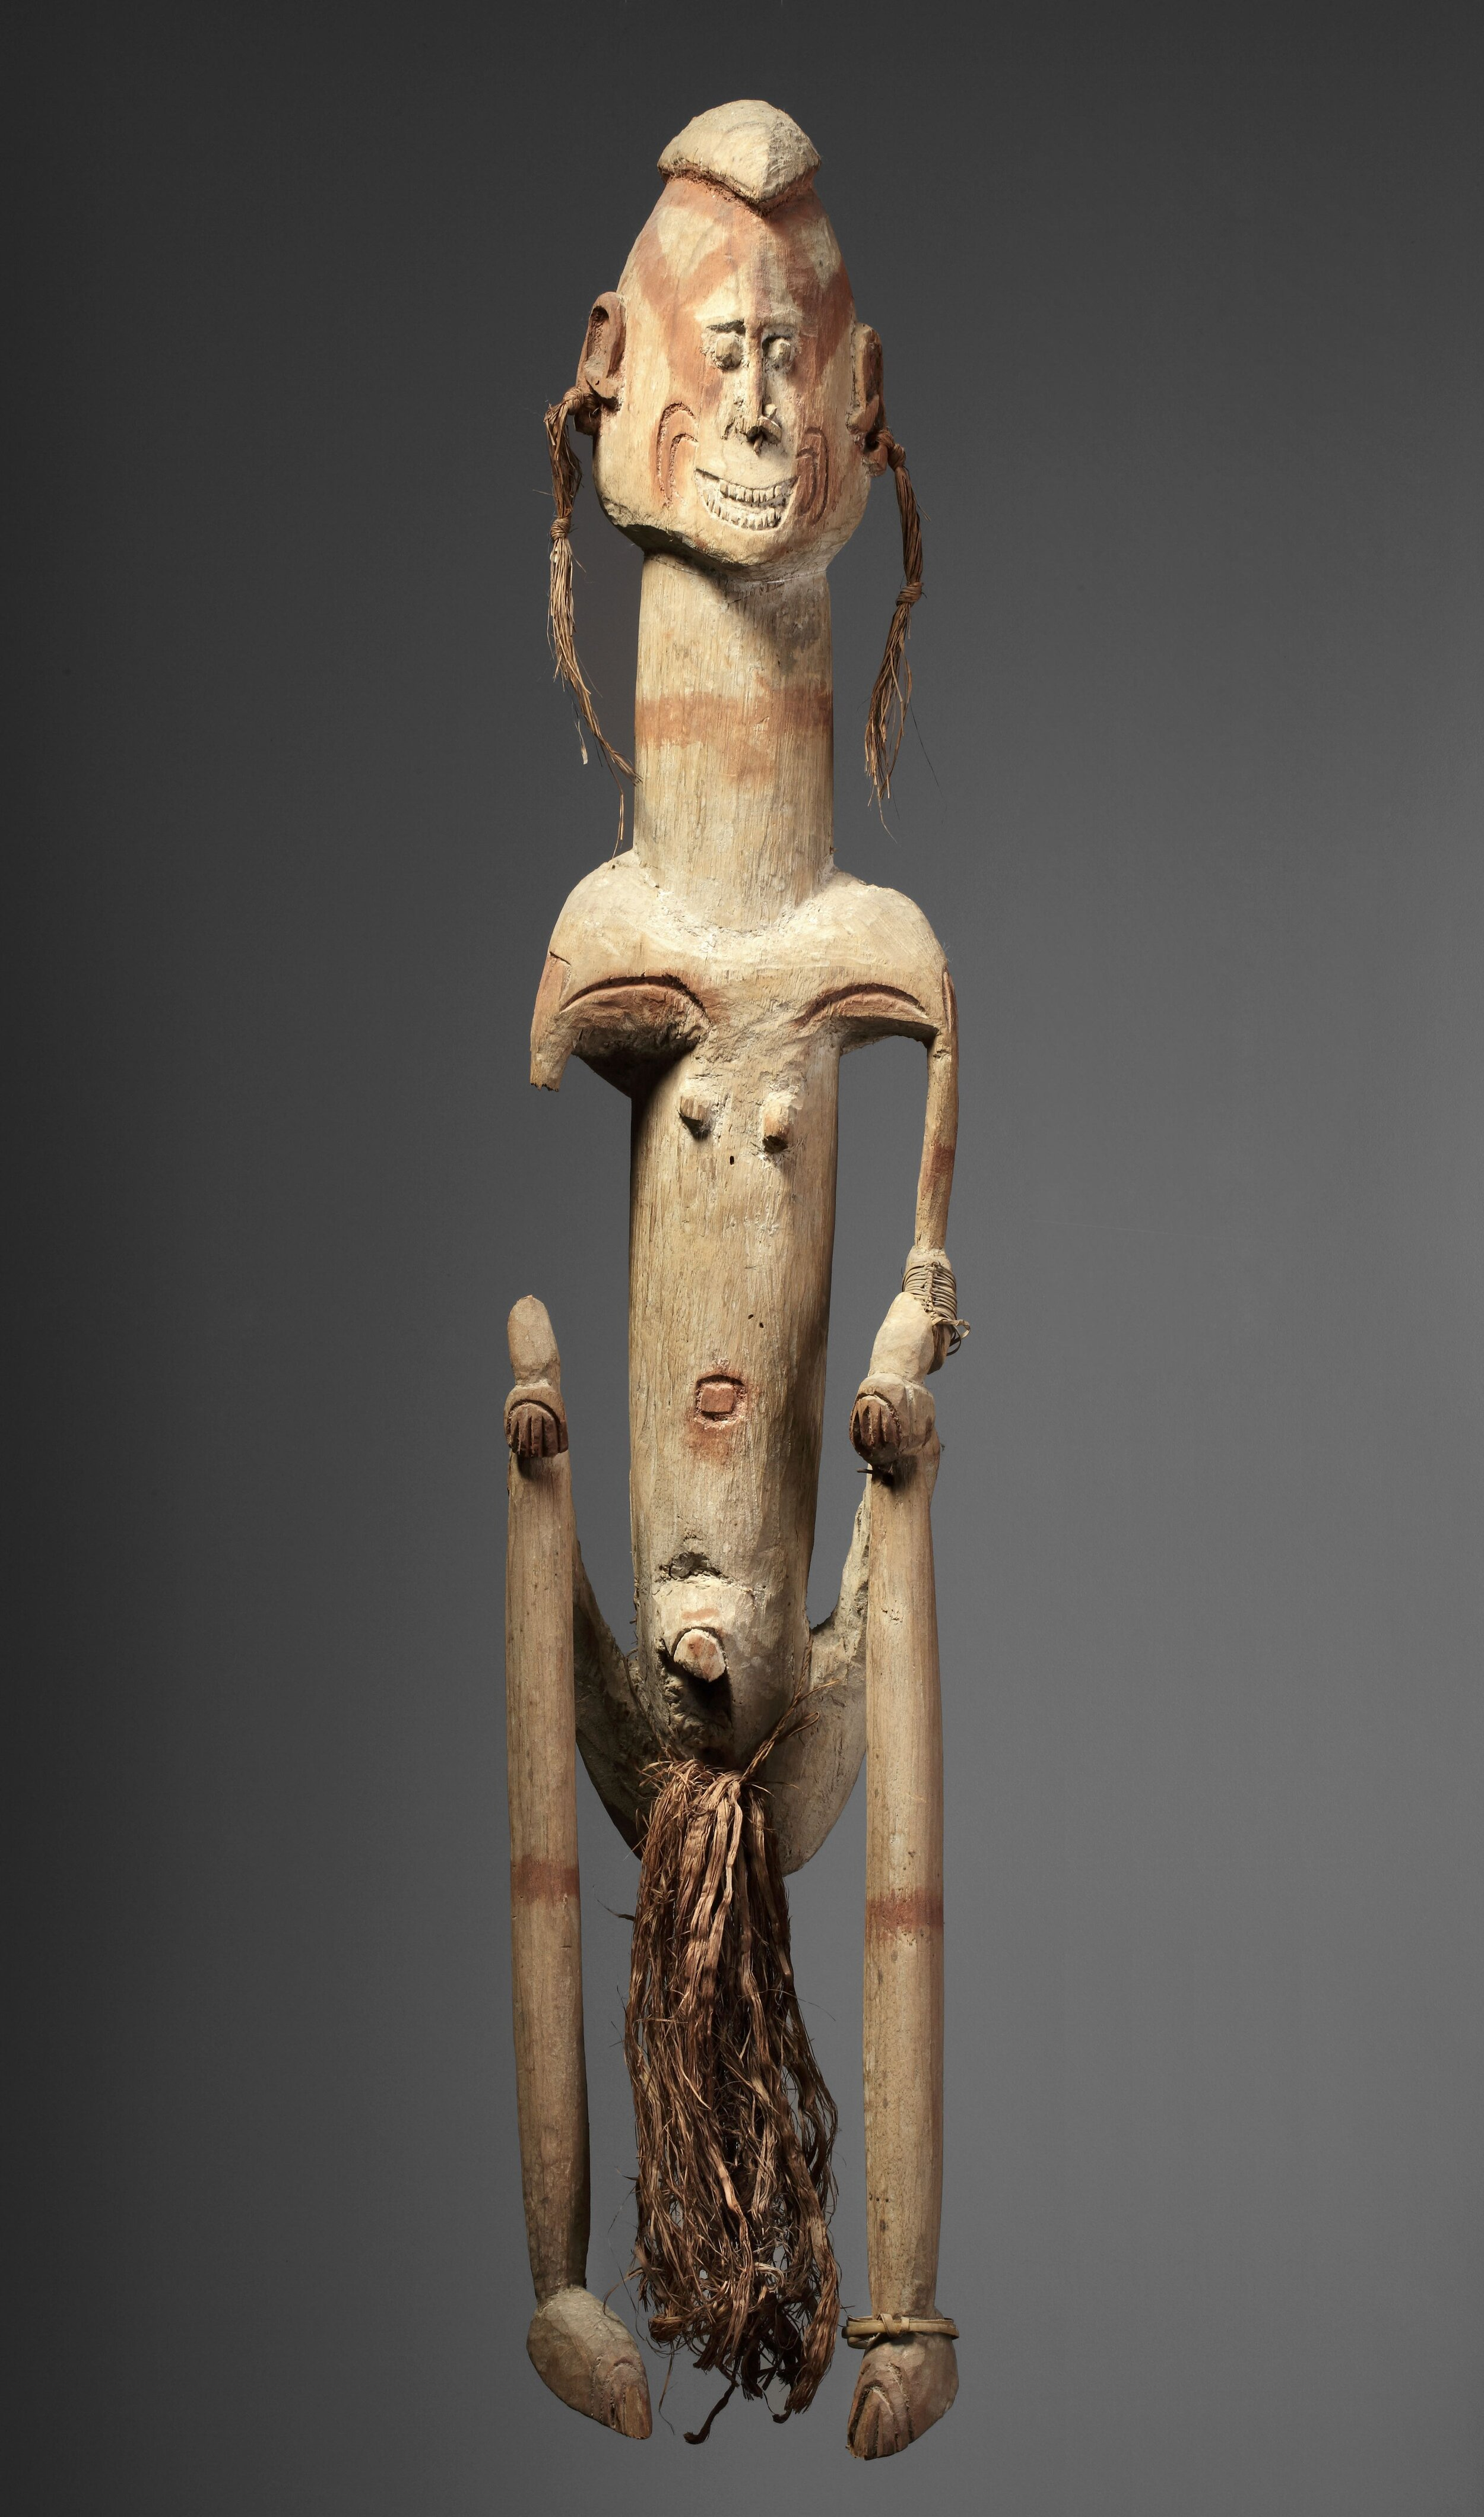 """Ancestor figure J, accompanied by a document typed by the collector indicating: """"Female Figure. Left hand on knee. Missing right arm. Legs straight down. H: 87 cm. Soft wood and light. Originally painted with lime. Incised lines painted red; navel also painted, bands around the legs and painted lizard figure on back. Purchased at the MSC missionary house in 1950. Collected by Father Viegen ... Noordwest River. Private collection. Photo: Jan van Esch"""